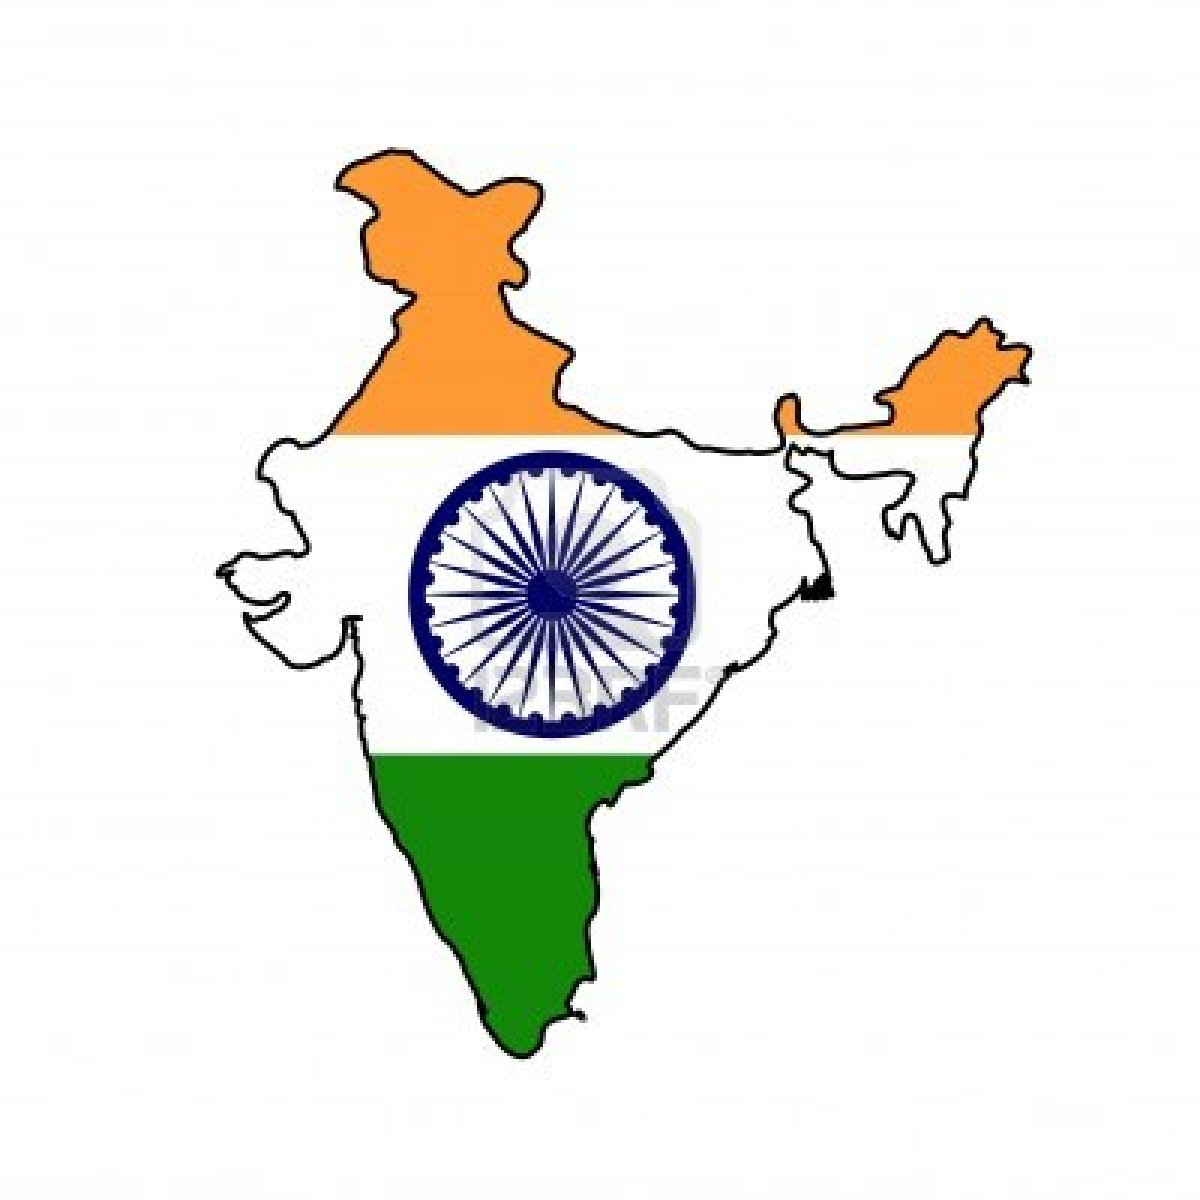 9320566-illustration-of-the-india-flag-on-map-of-country-isolated-on-white-background